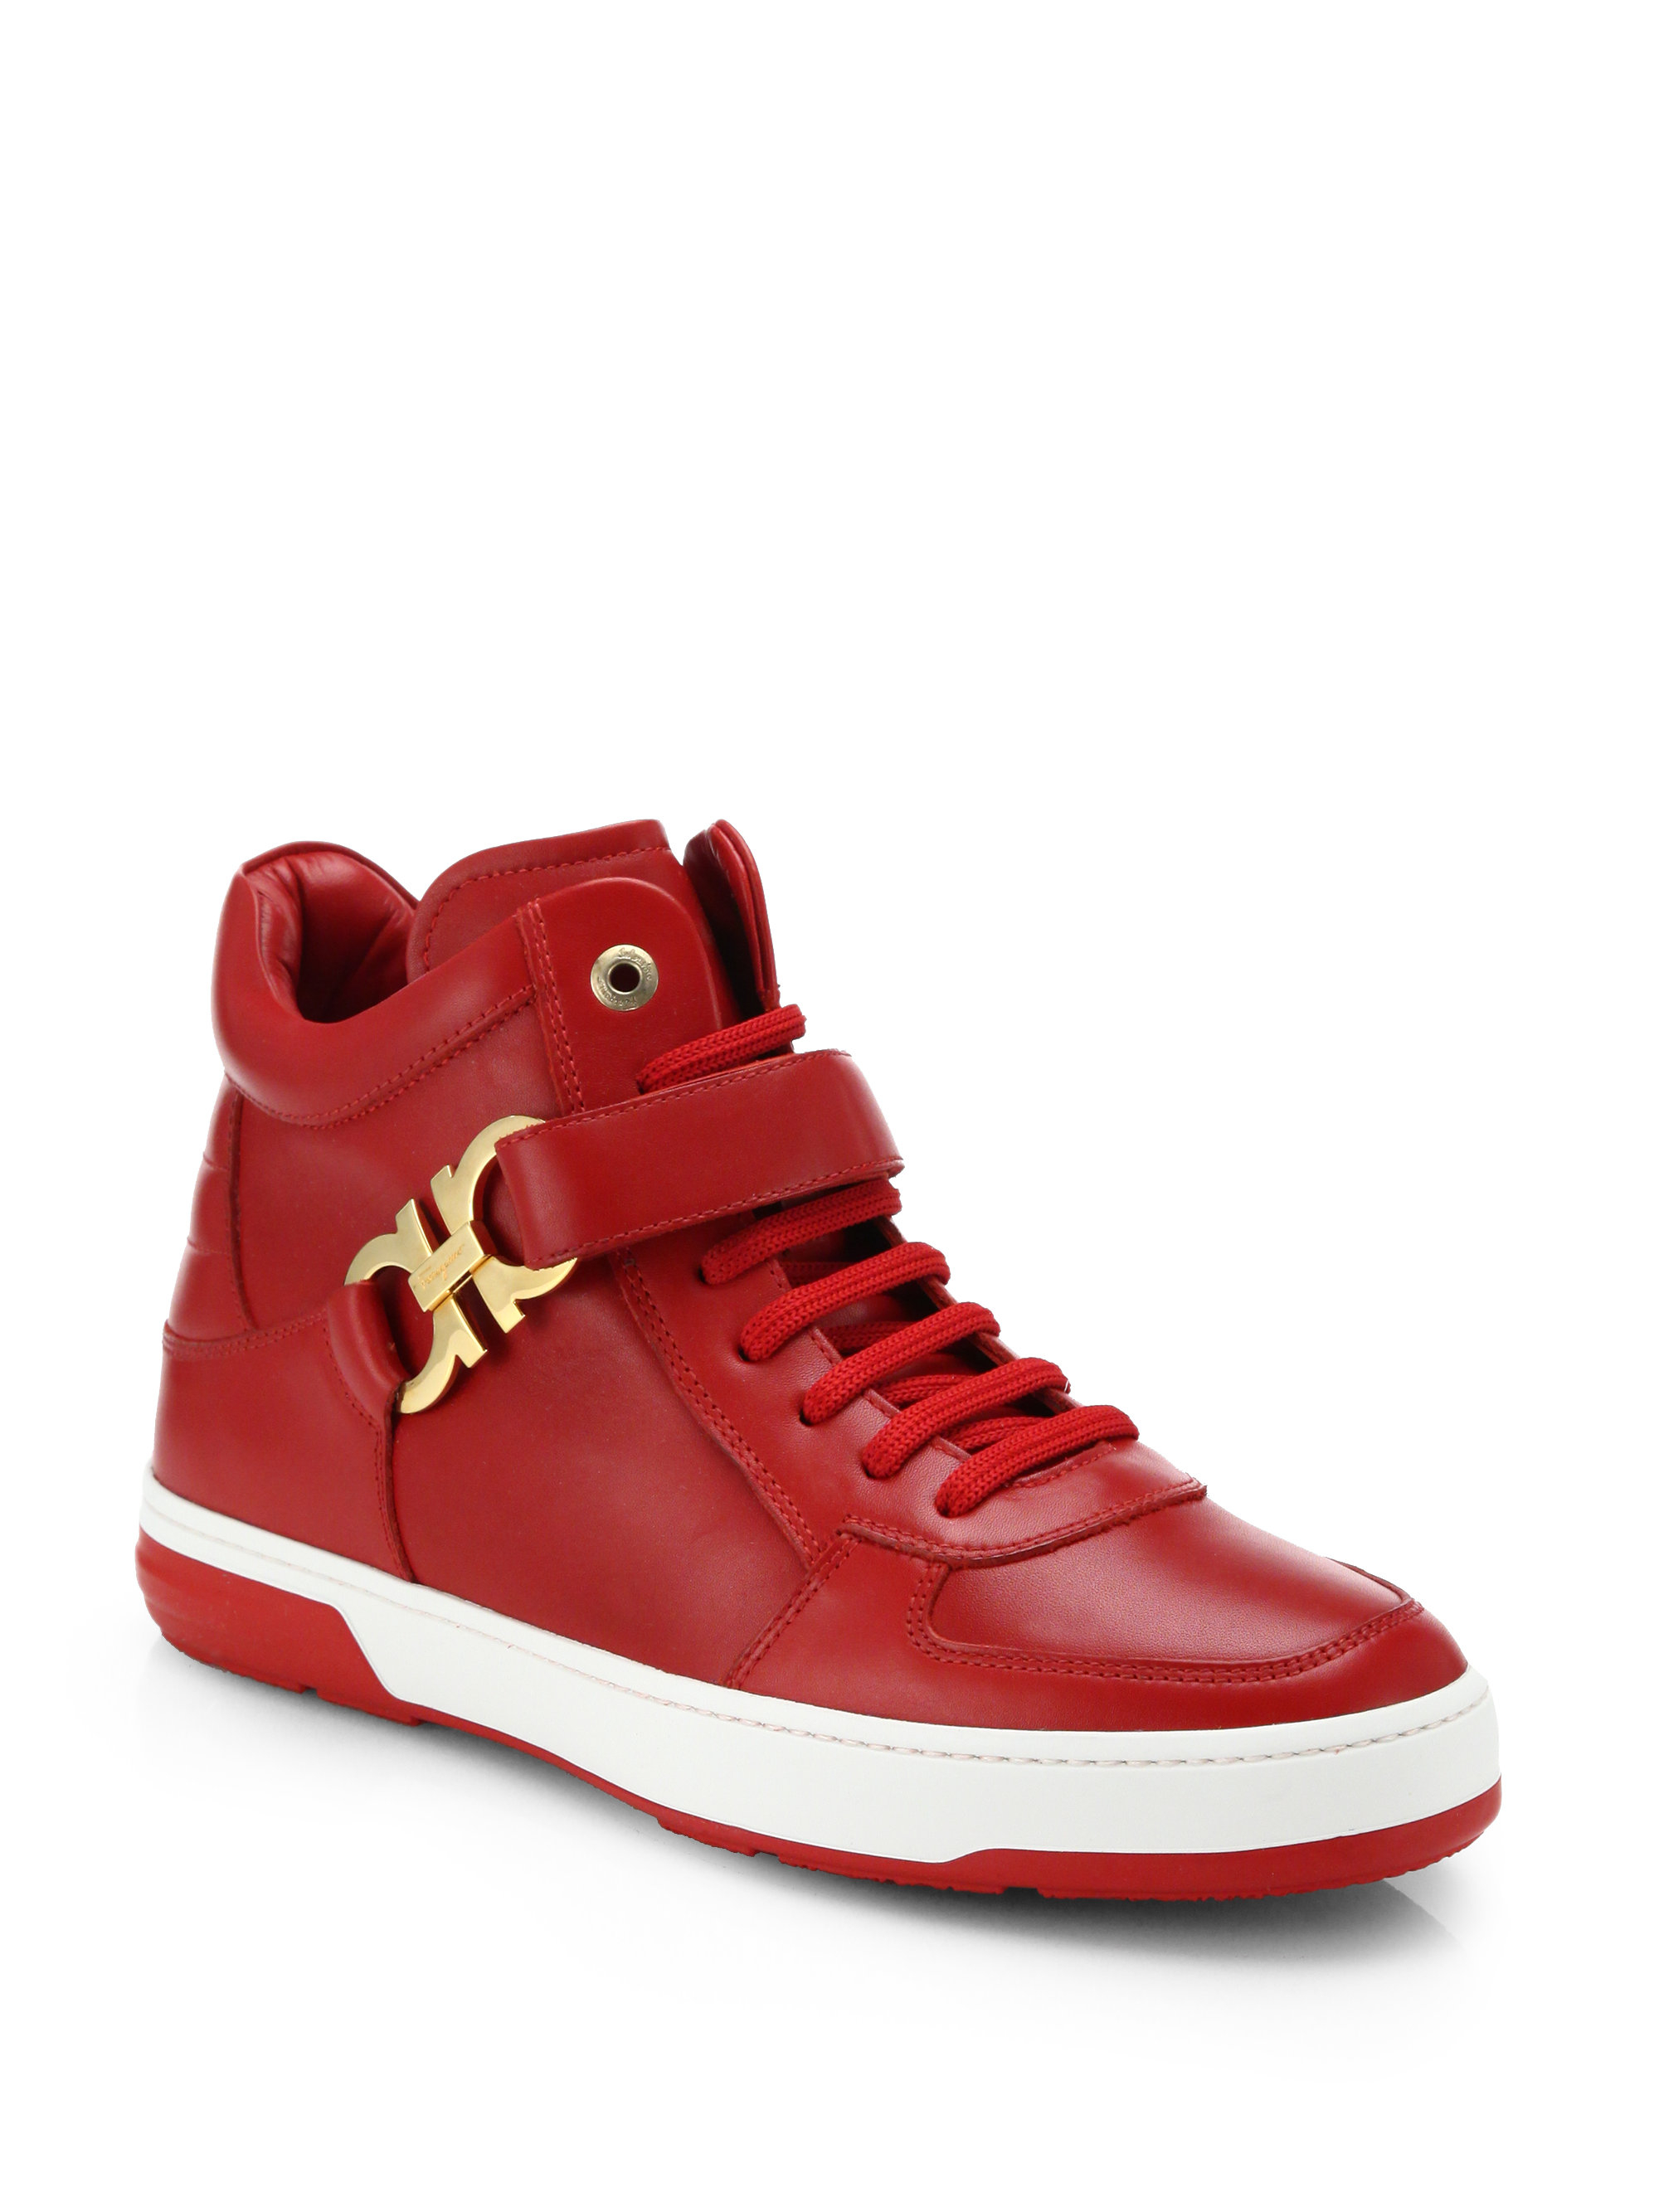 Ferragamo Nayon Gancini Leather High-top Sneakers in Red for Men ...